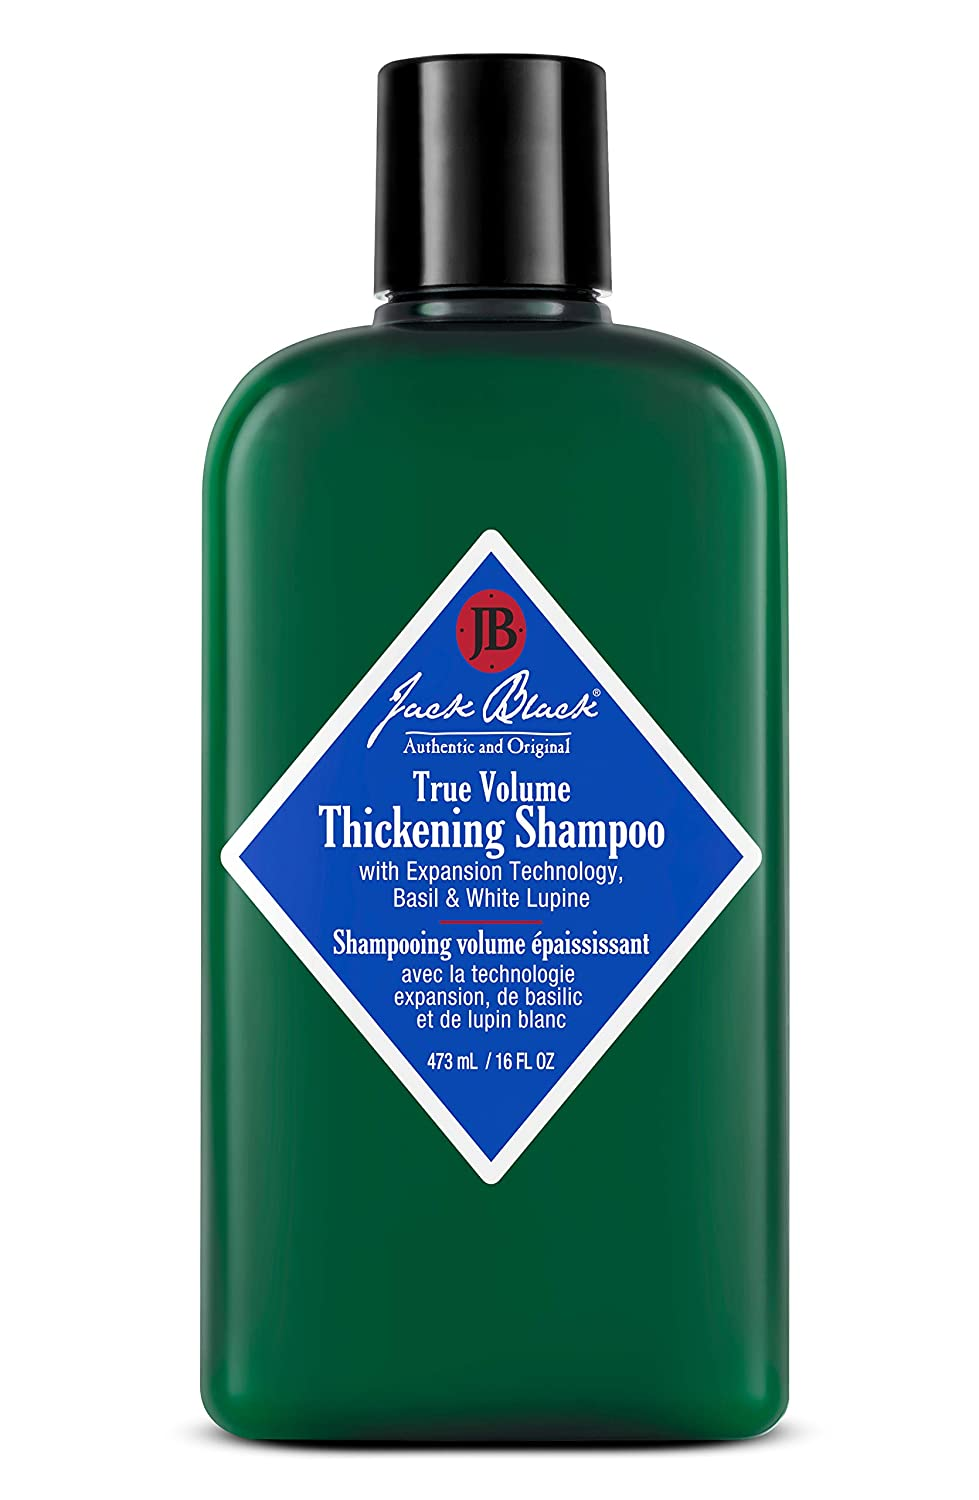 True Volume Thickening Shampoo